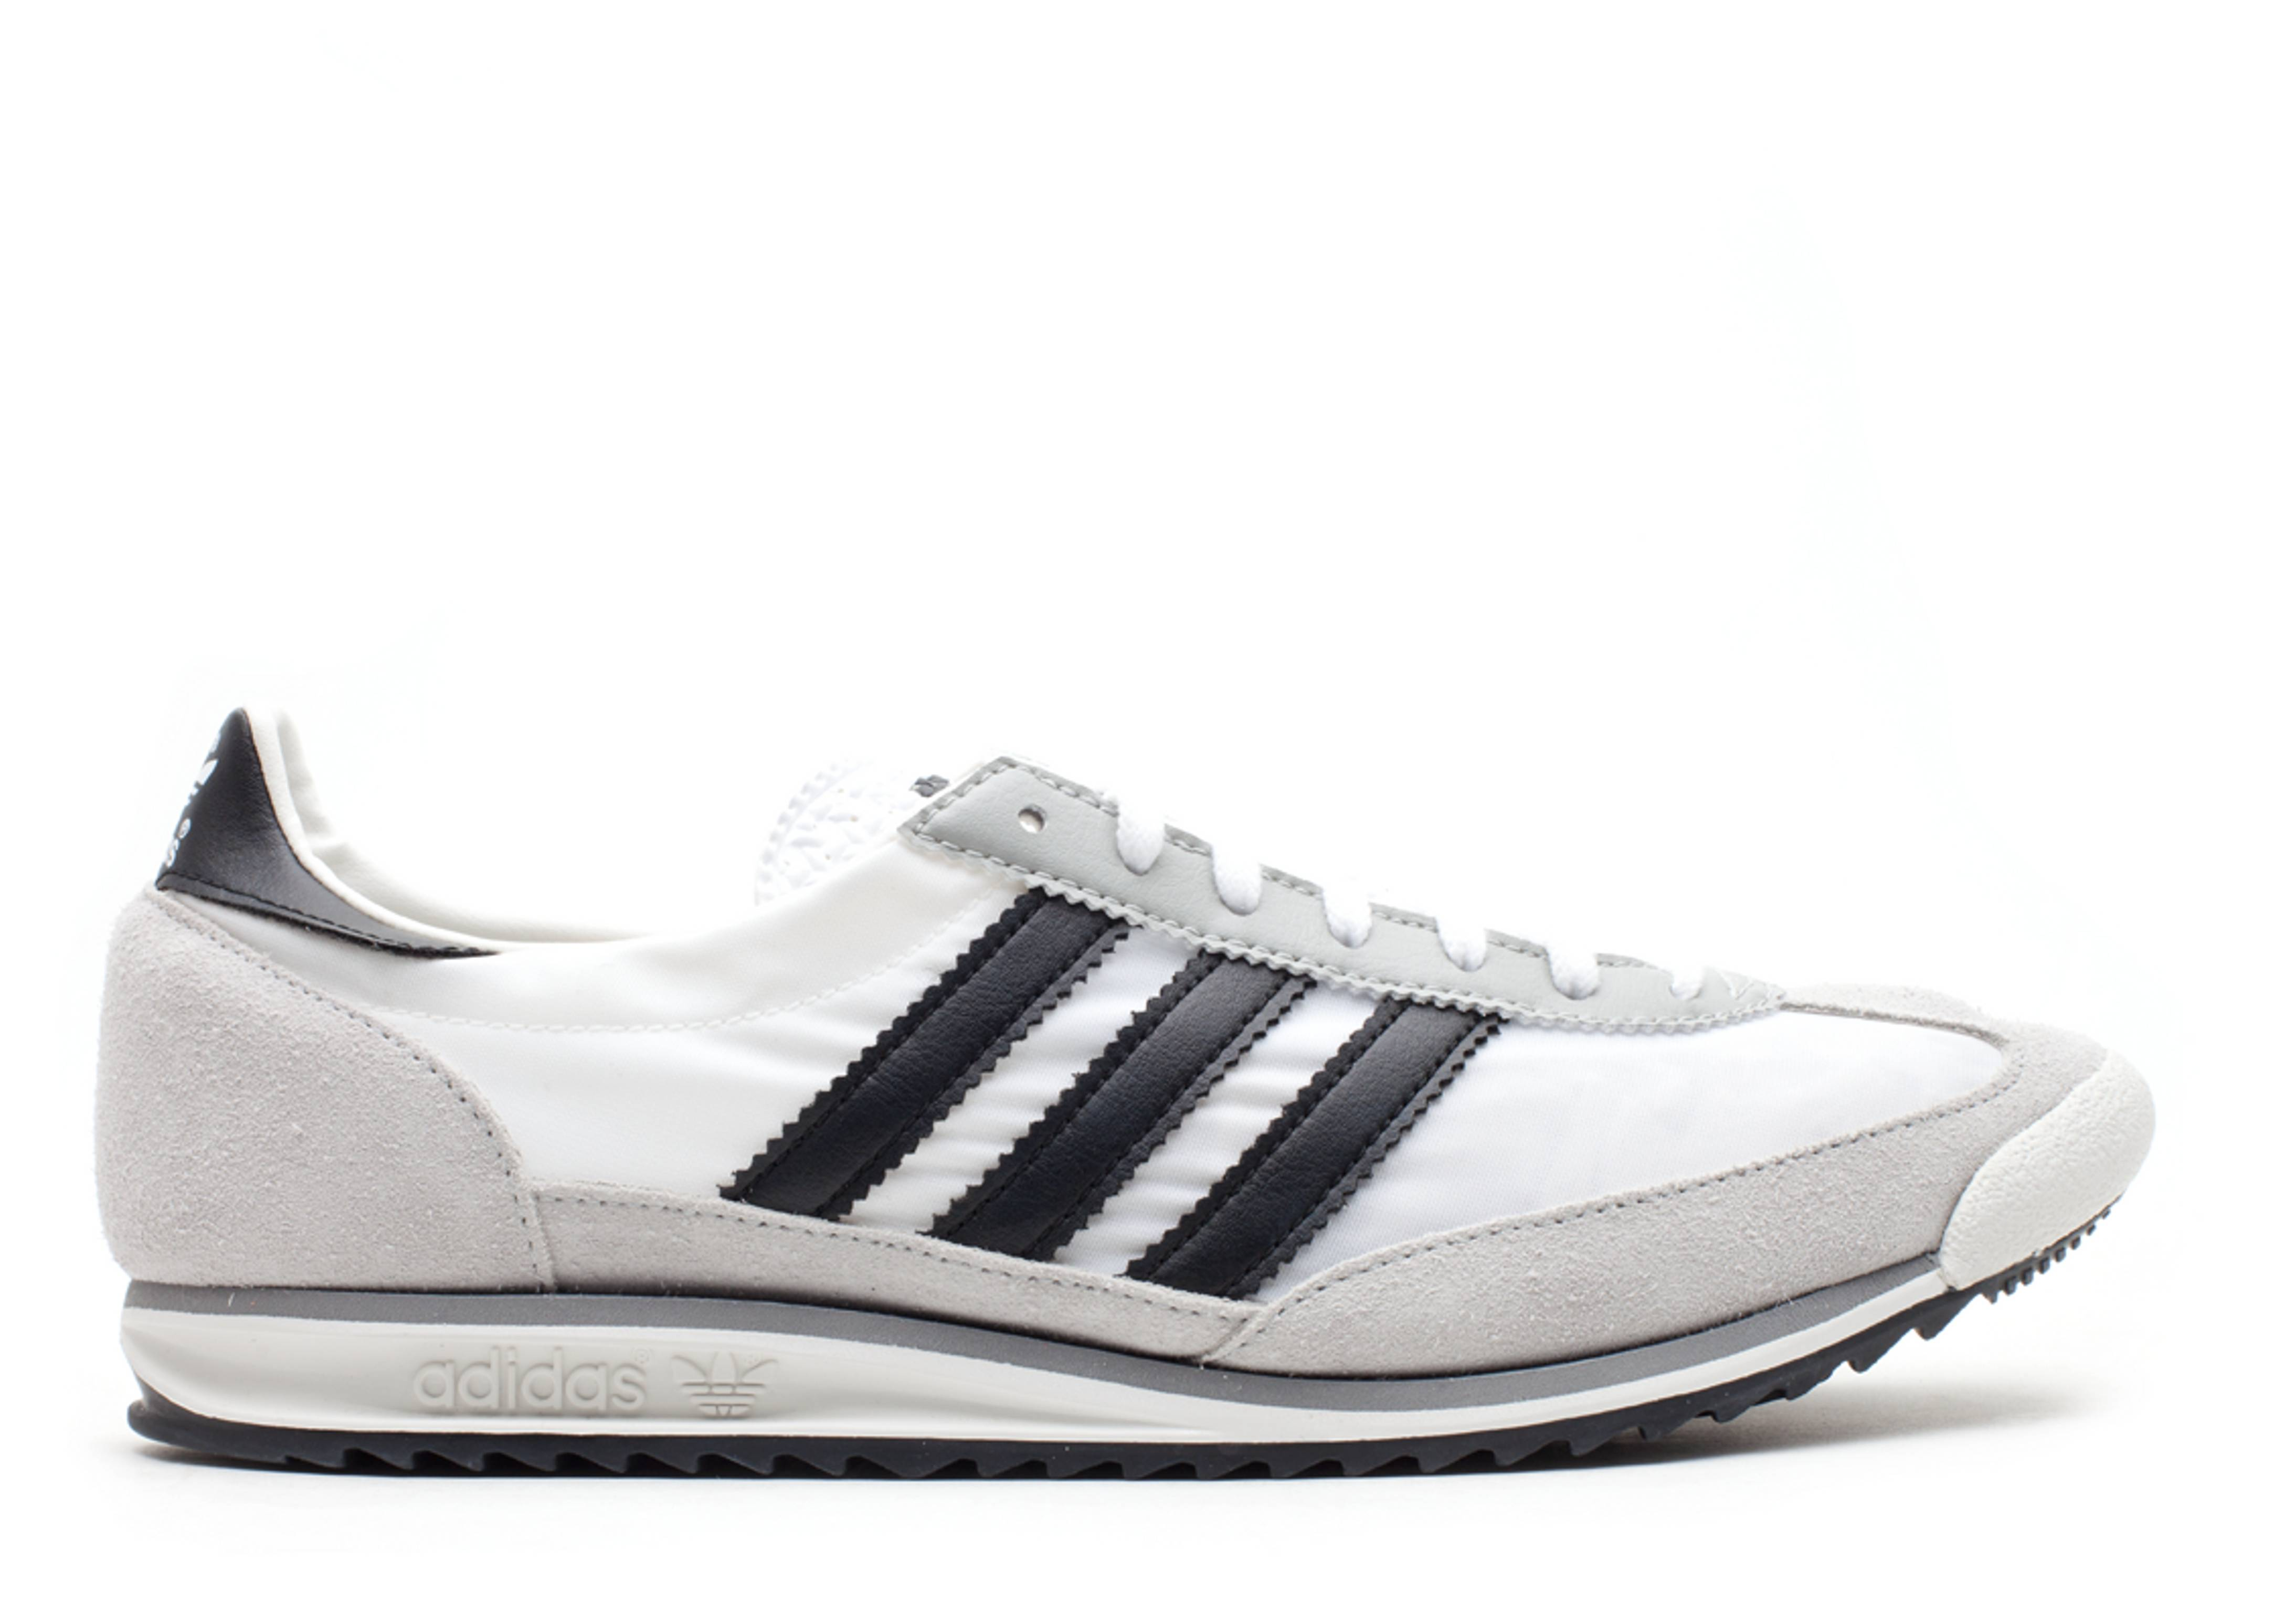 Sl 72 Adidas g43588 white,black1,shadegrey | Flight Club